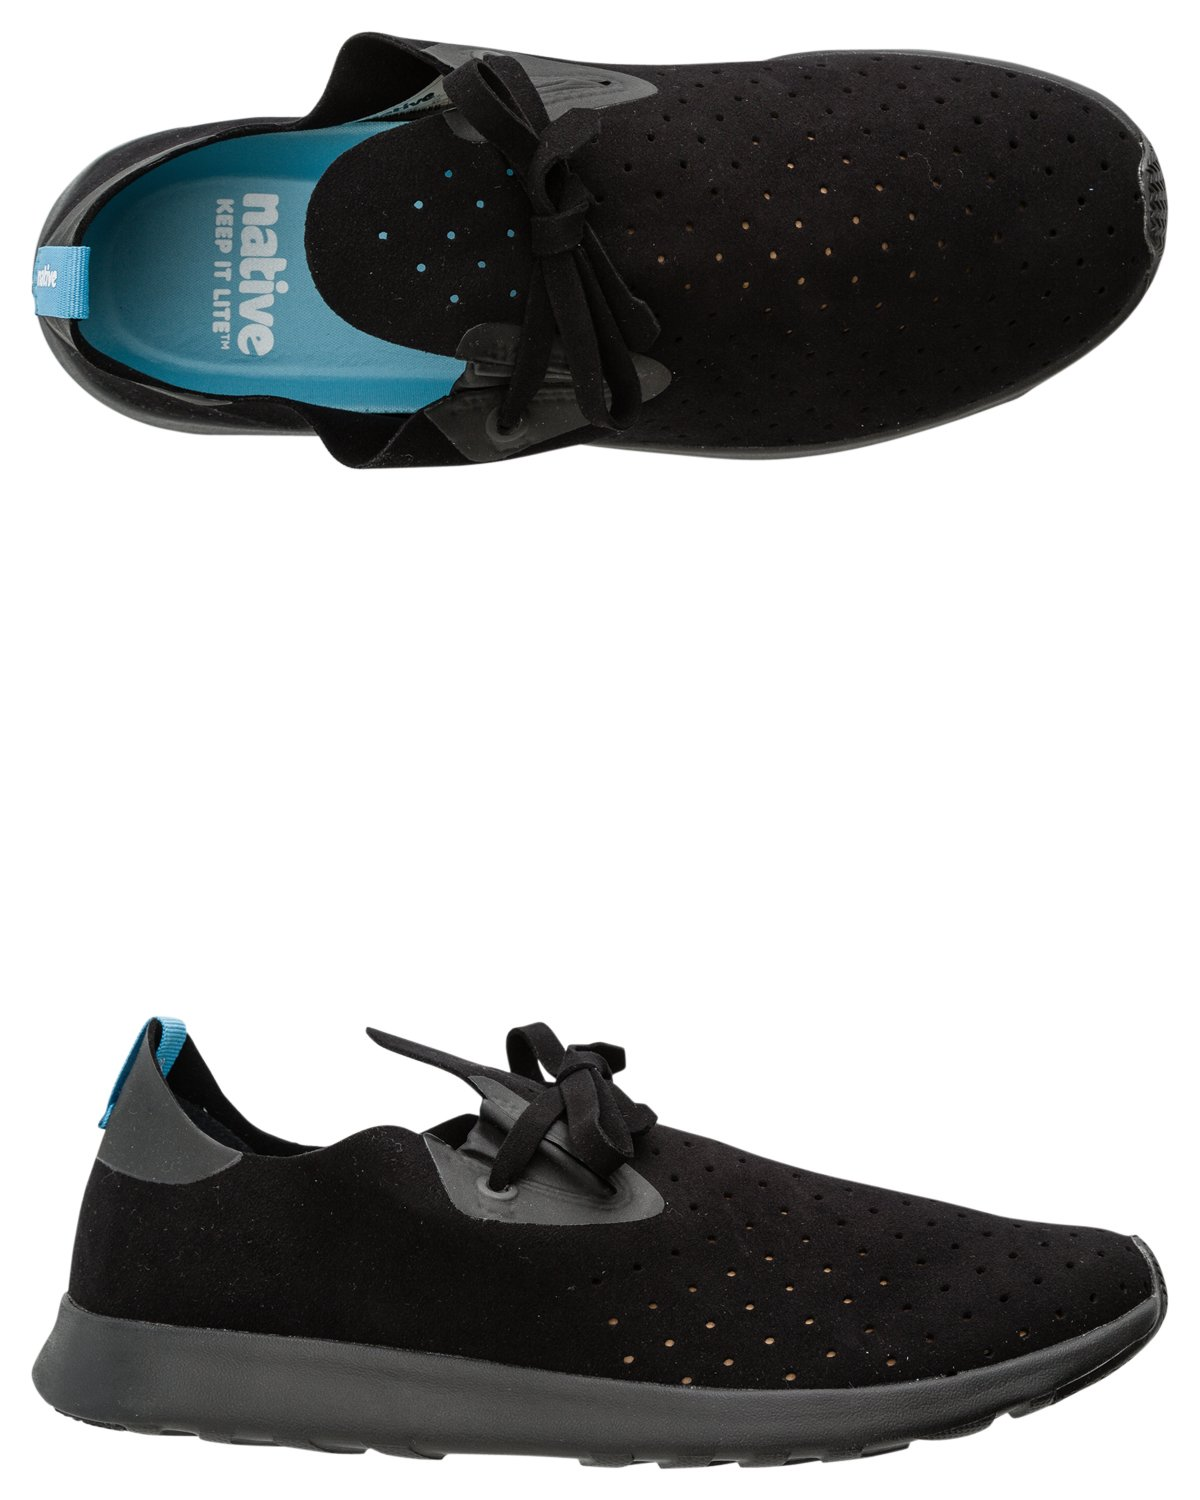 Native Unisex Apollo Moc Fashion Sneaker. B01831YG48 12.5 B(M) US Women / 10.5 D(M) US Men|Jiffy Blk/Jiffy Blk